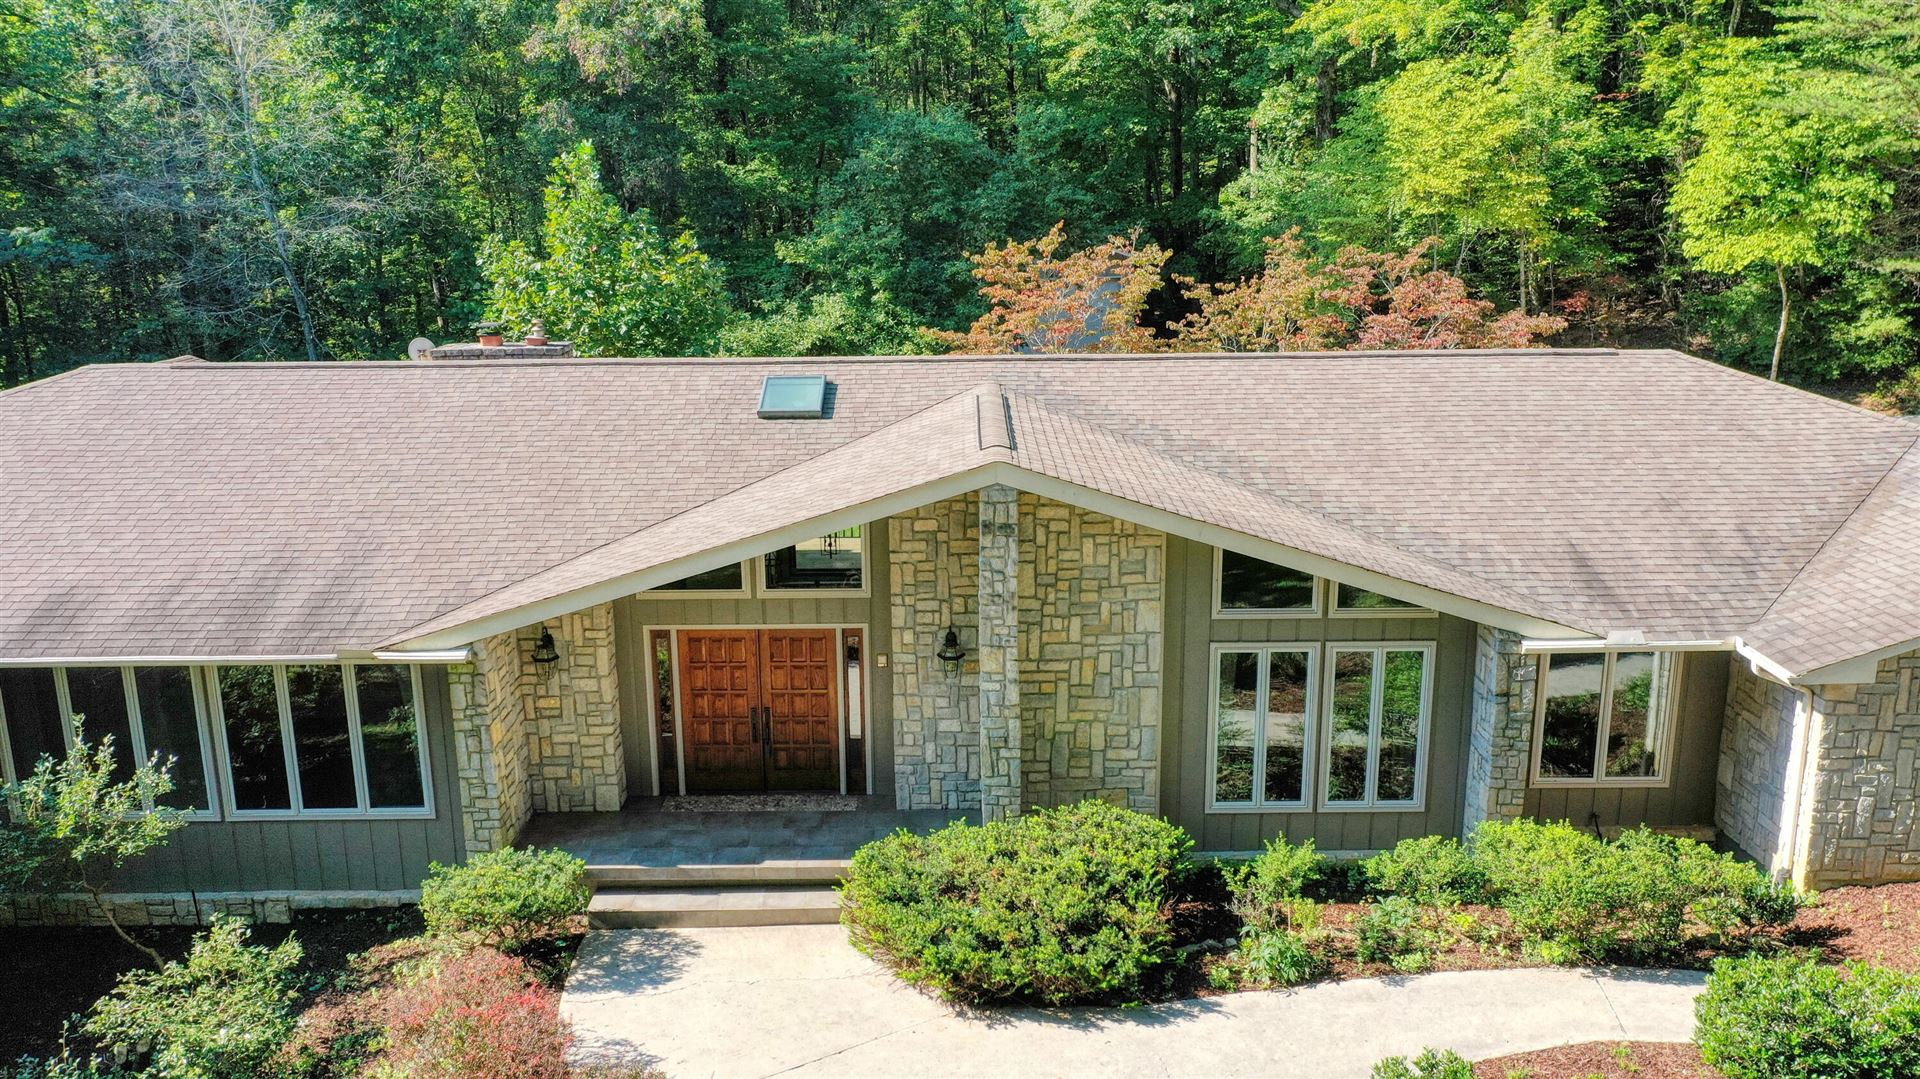 Photo of 2409 W Gallaher Ferry Rd, Knoxville, TN 37932 (MLS # 1169695)